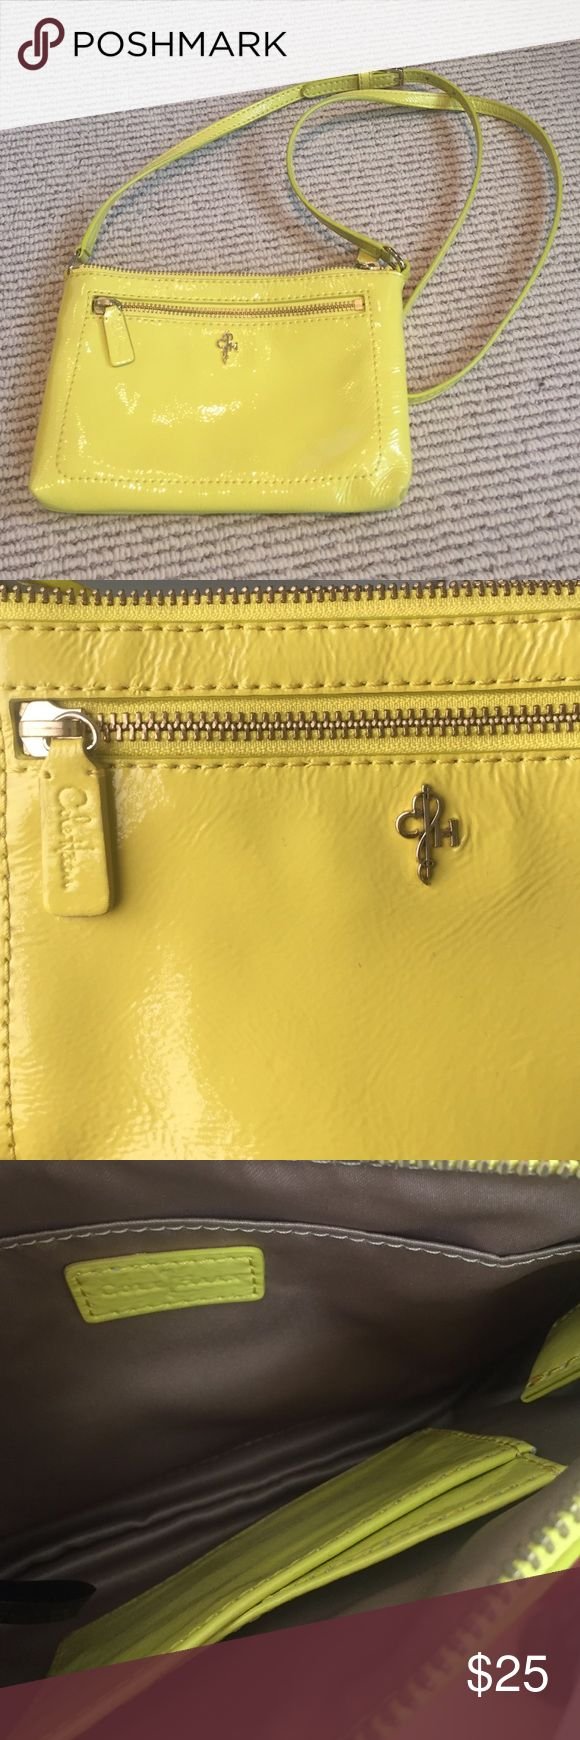 COLE HAAN patent crossbody New without tags yellow patent COLE HAAN crossbody purse. Bought from a sample sale and never used it. Outside zipper pocket. Inside flap pocket and card pocket. Adjustable strap. Cole Haan Bags Crossbody Bags